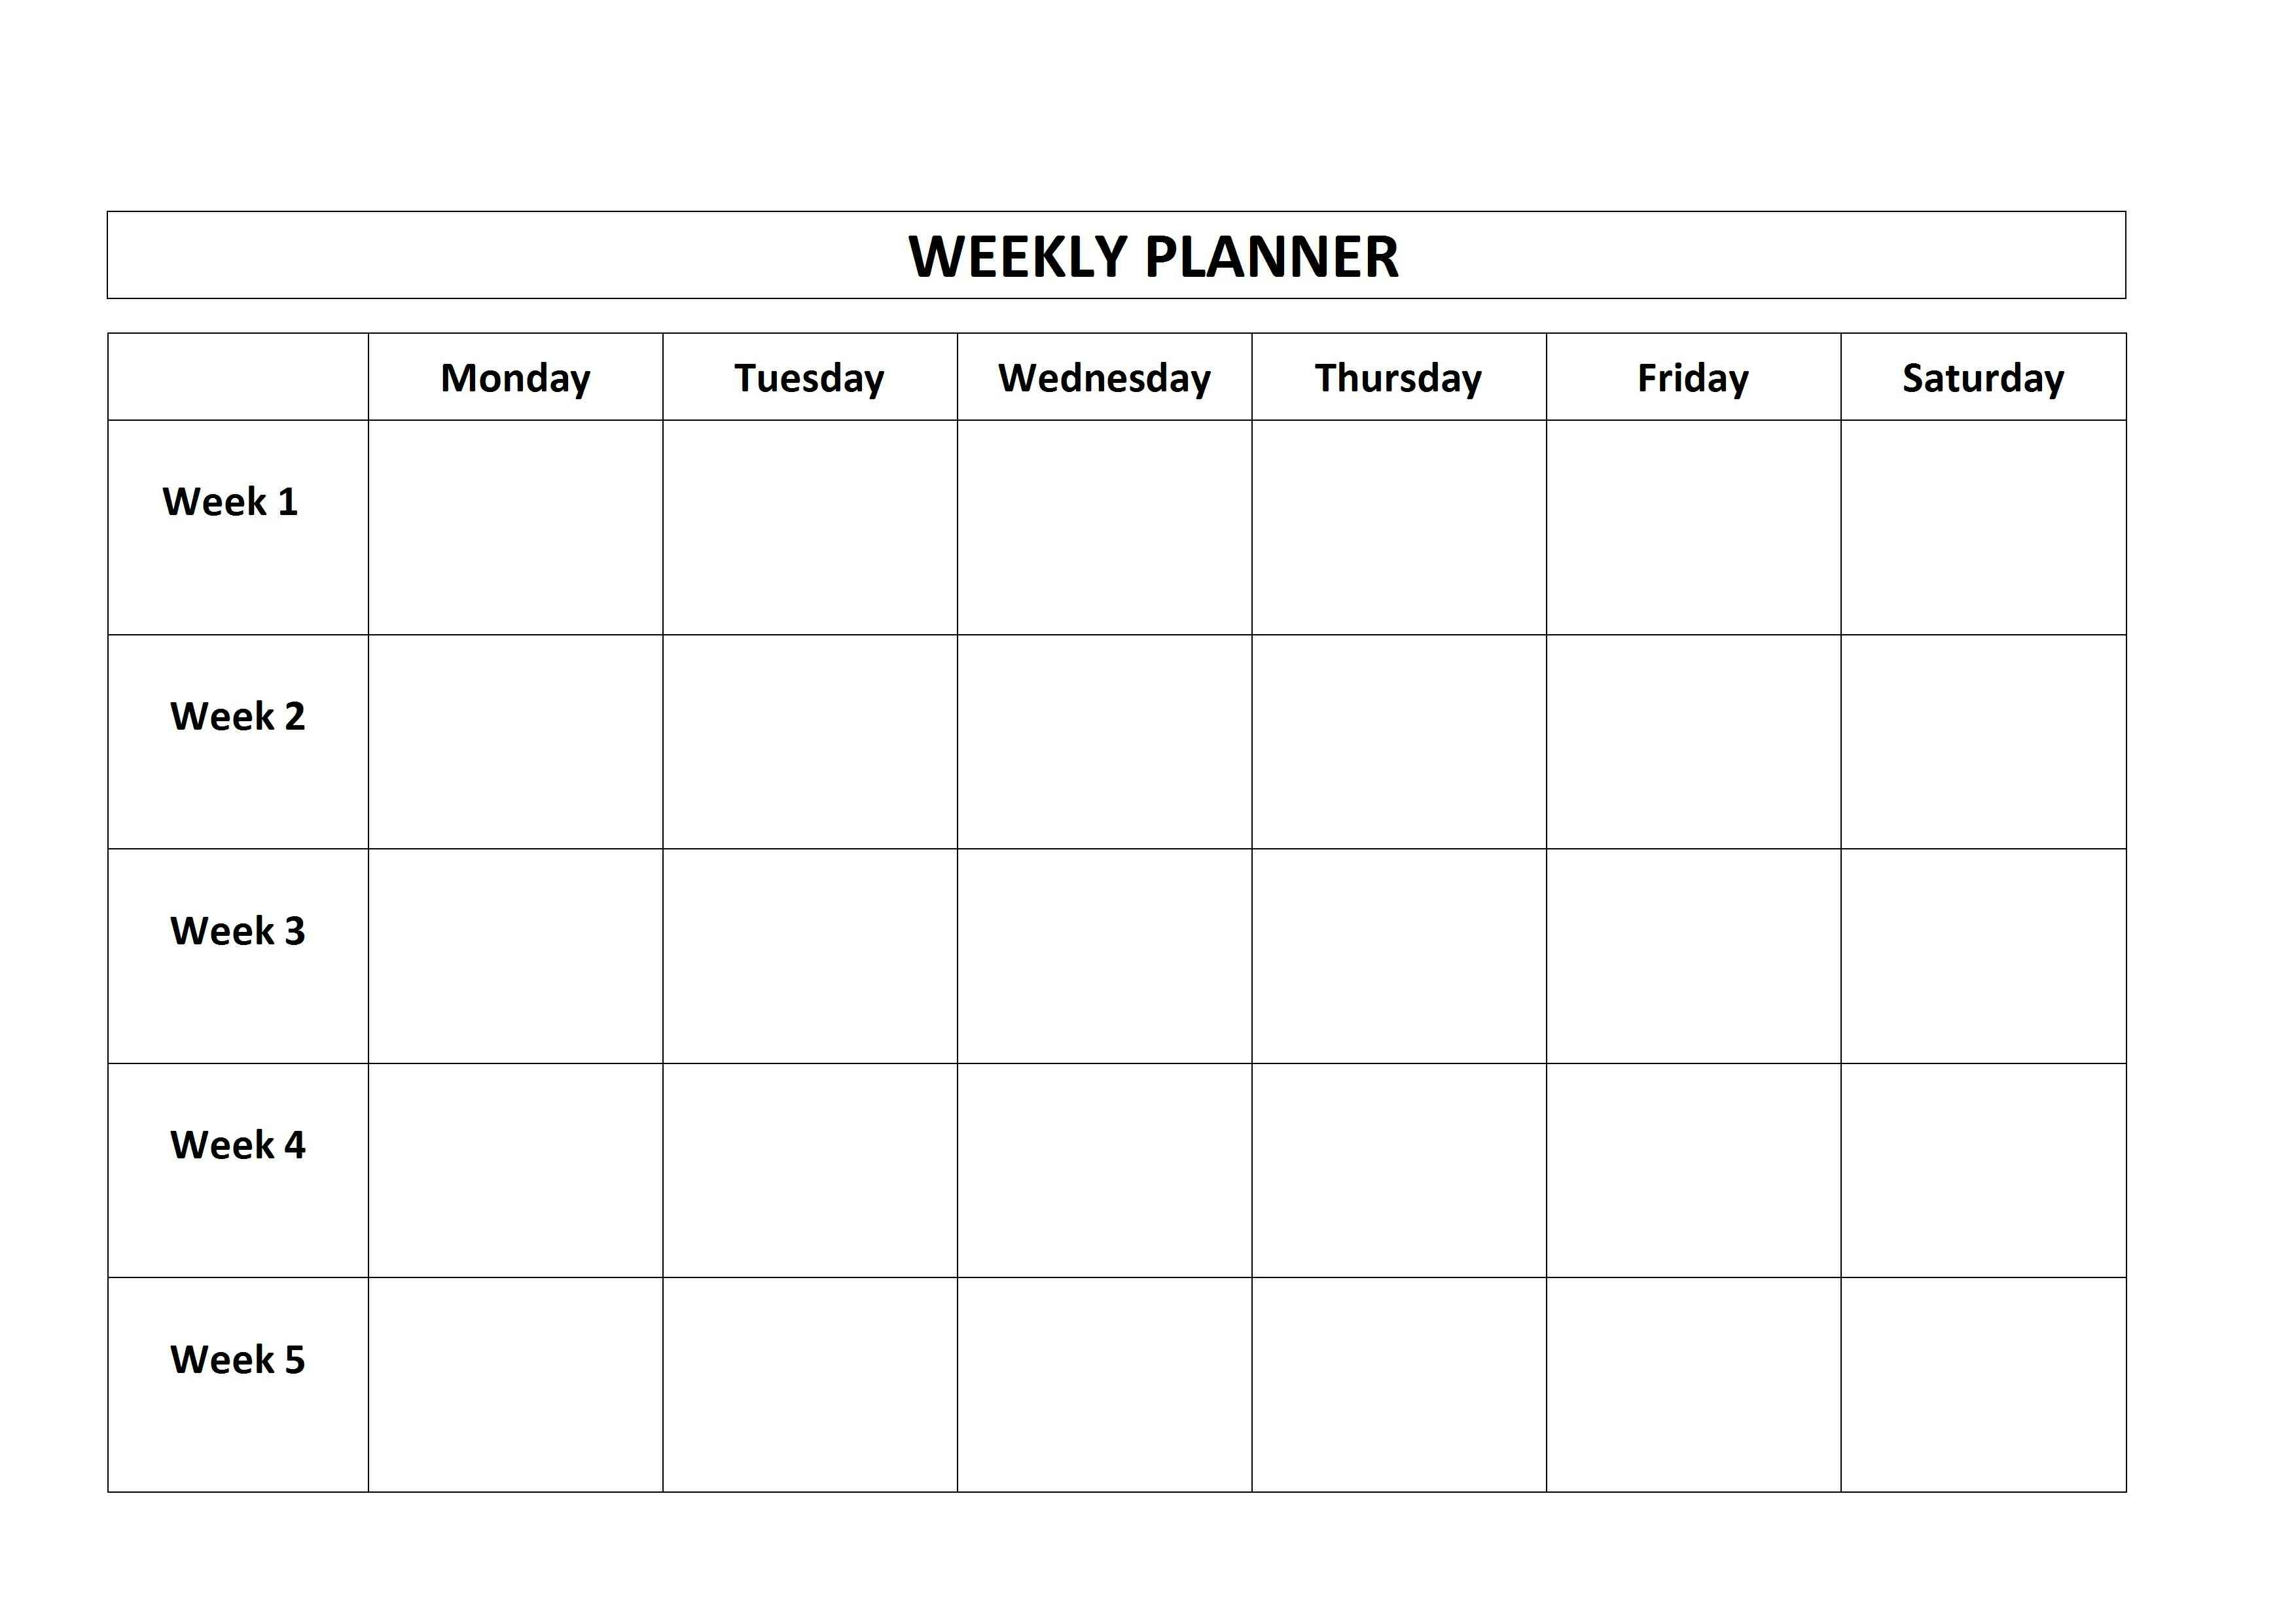 Weekly Planner Template Monday To Friday Commonpenceco3abry